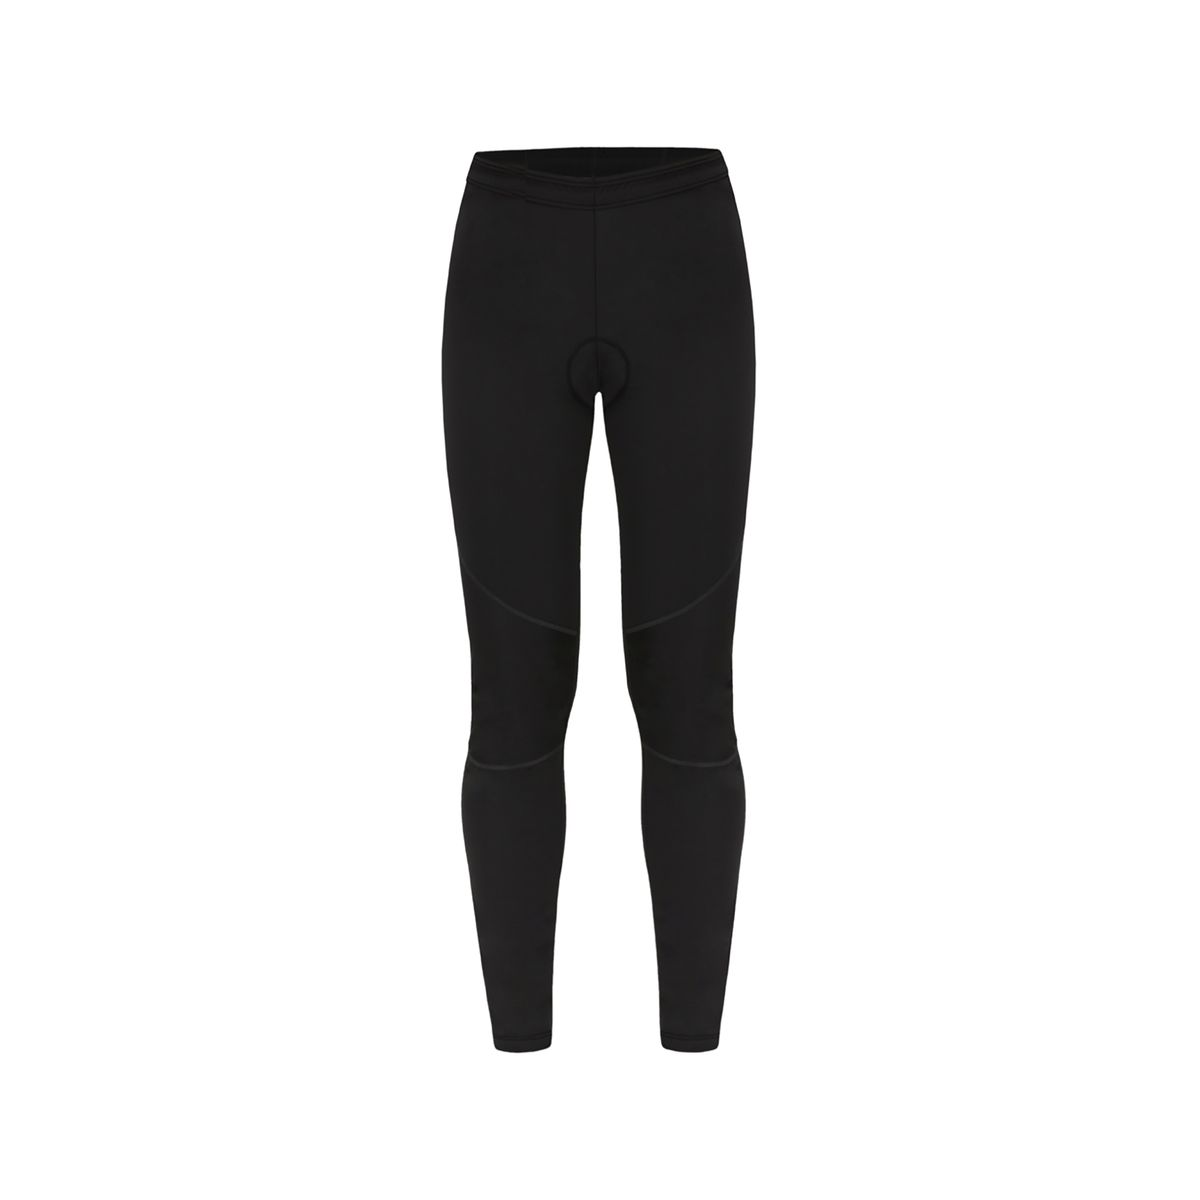 TARTU V3 thermal tights for women